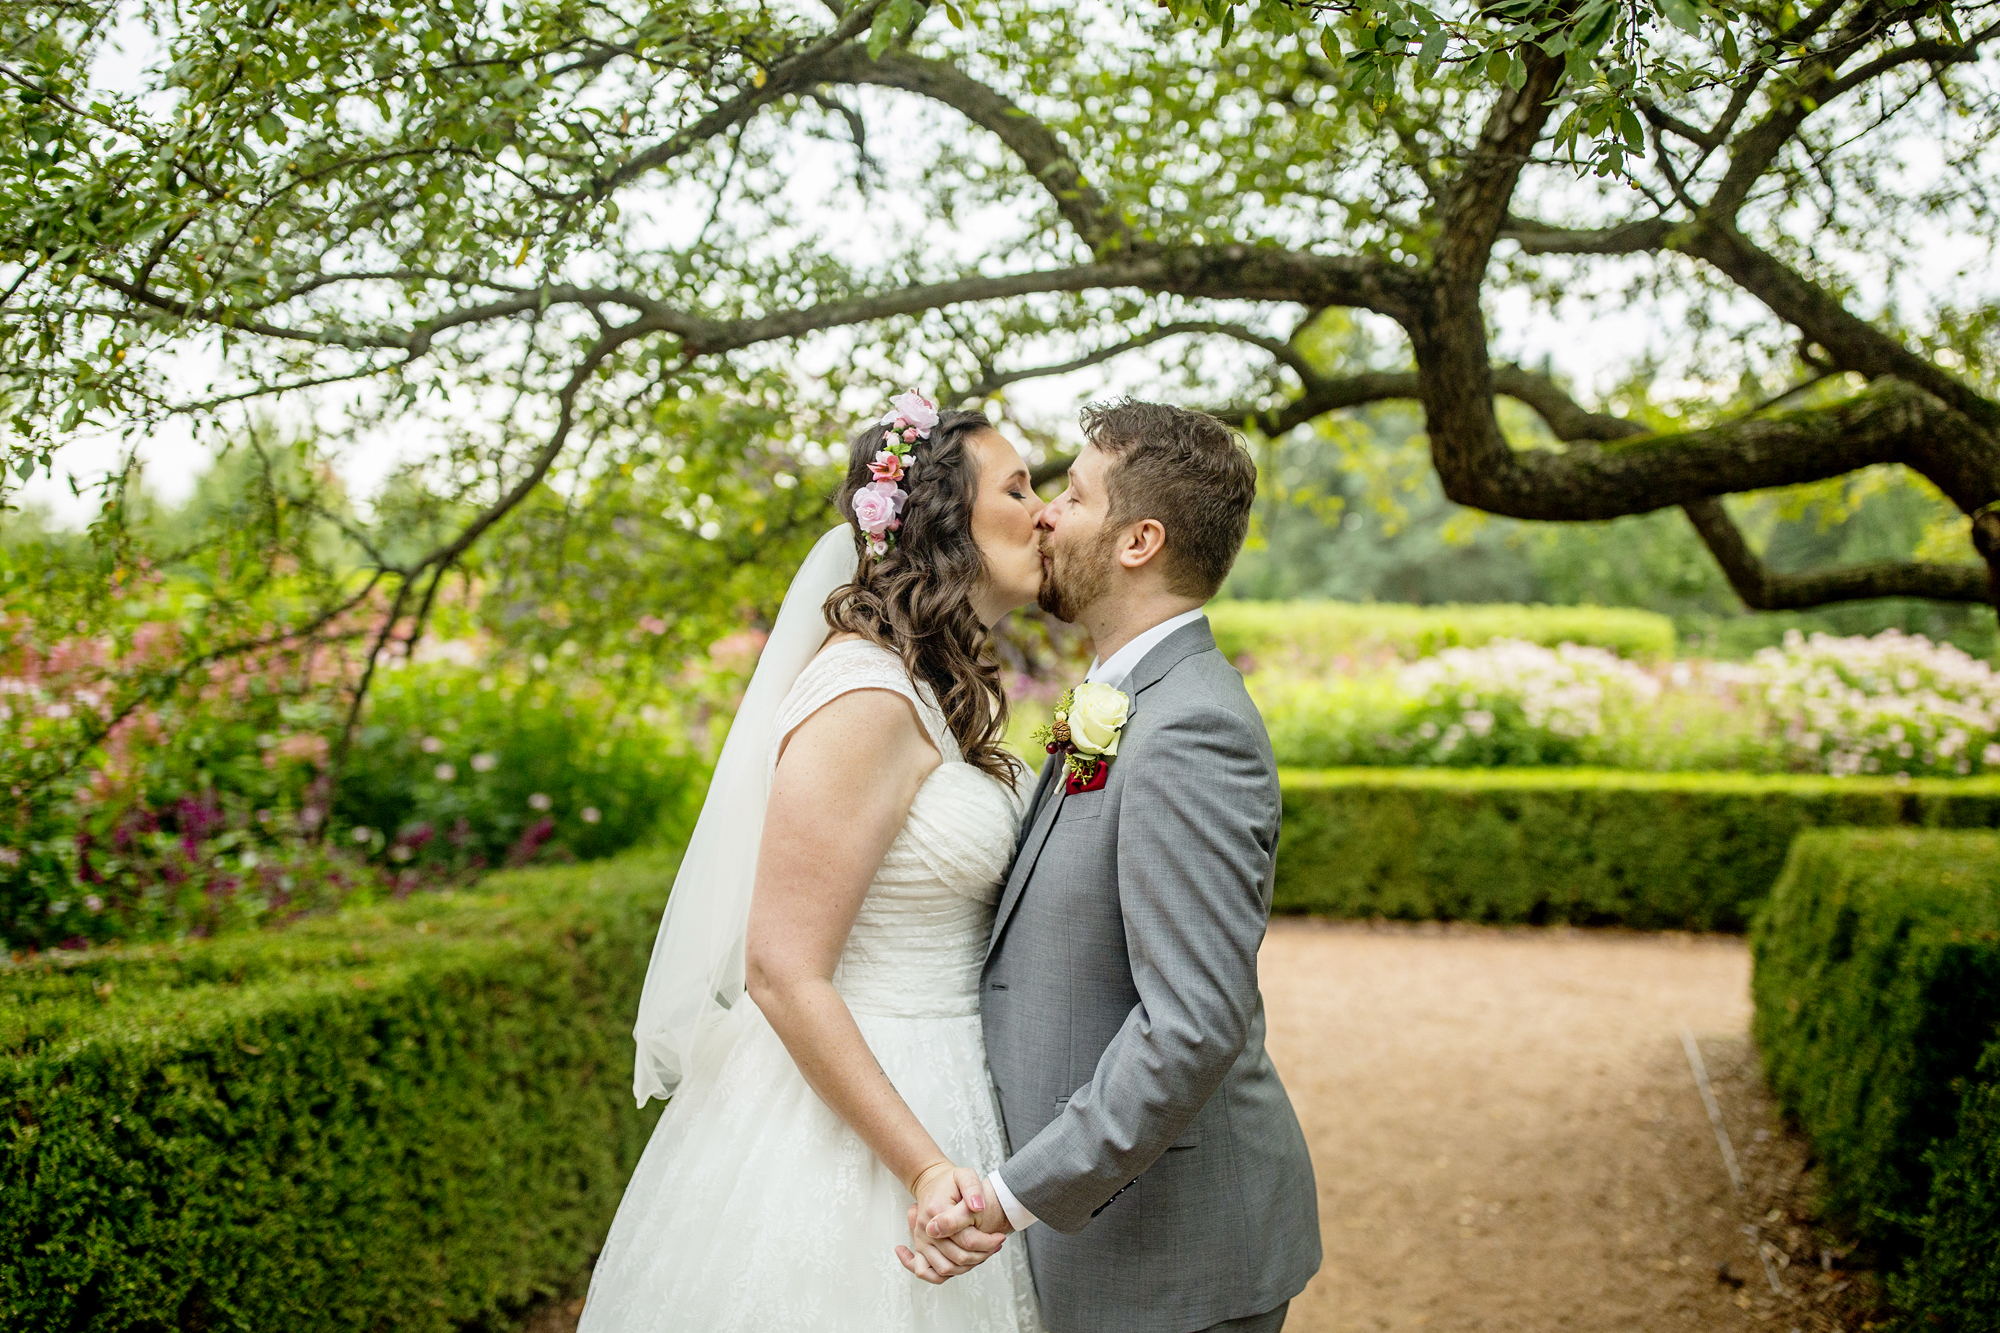 Seriously_Sabrina_Photography_Lisle_Illinois_Morton_Arboretum_Wedding_Day_Gowen27.jpg